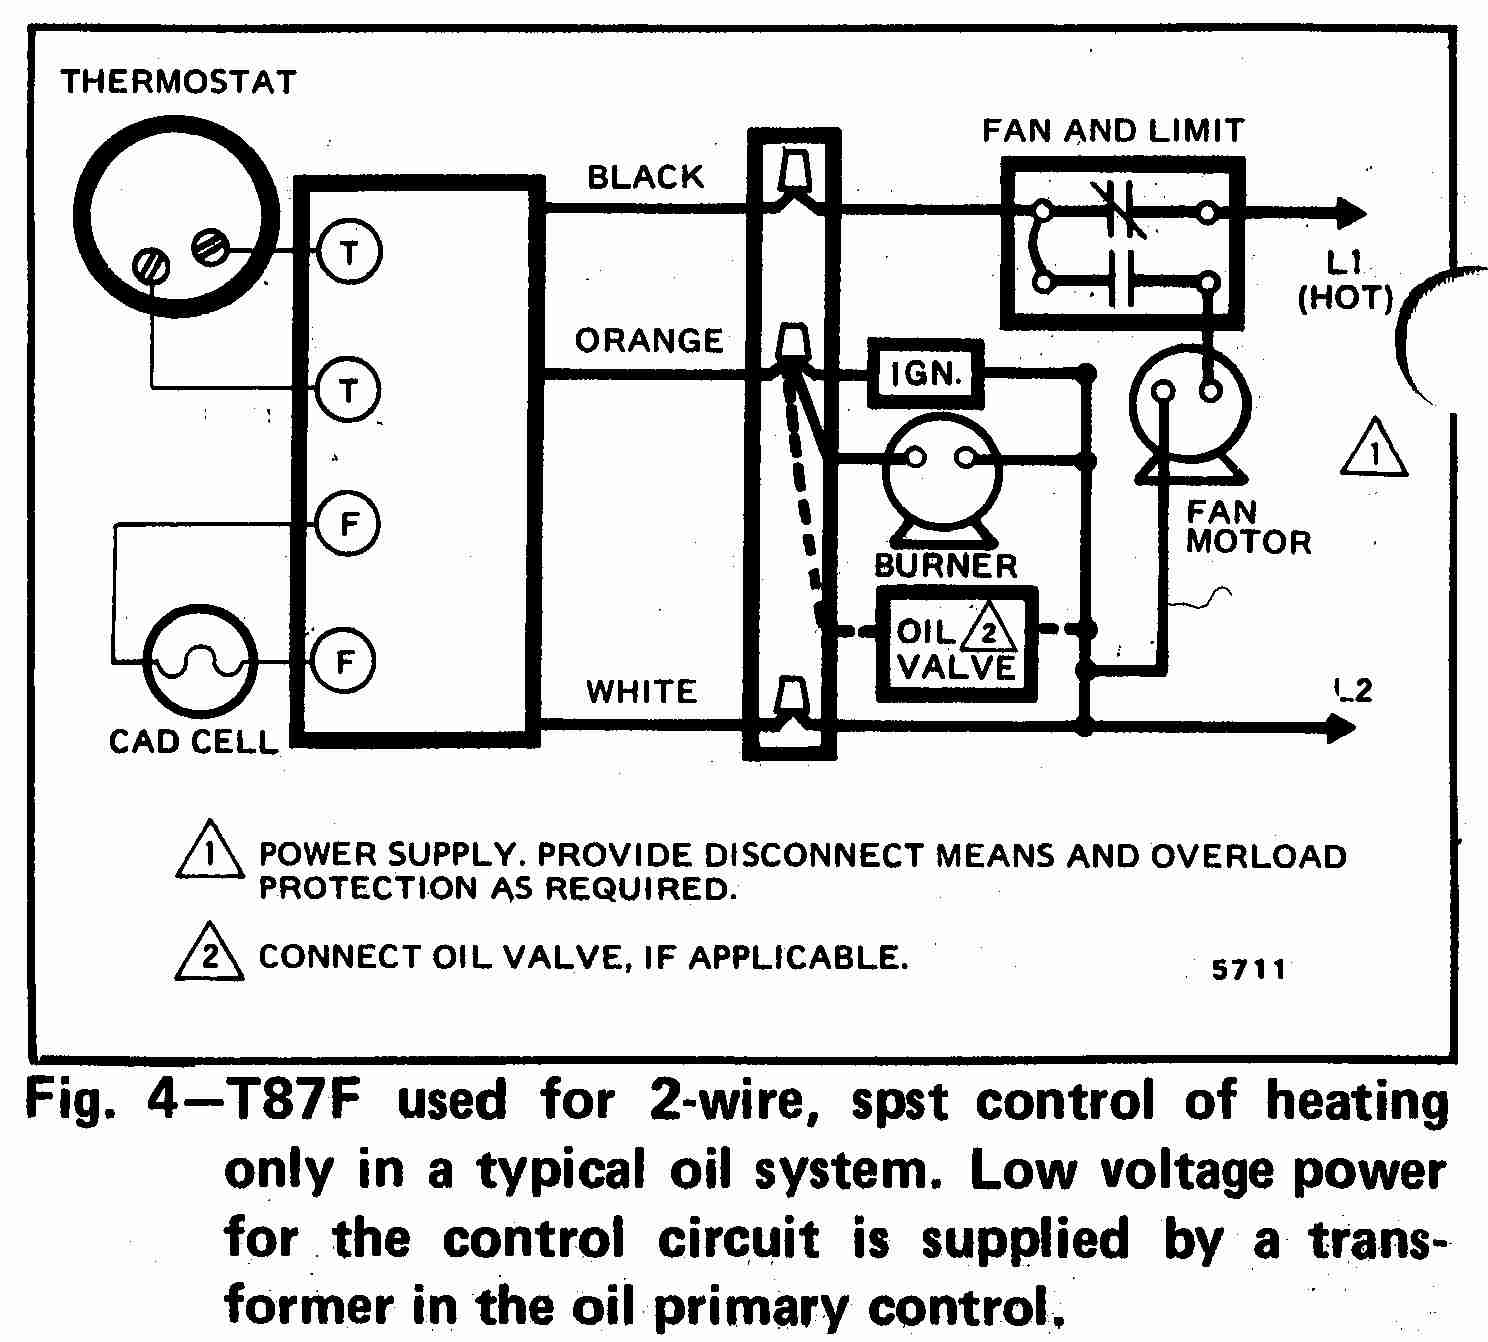 Heating And Air Conditioning Wiring Diagrams Free Diagram 1979 Chevy Corvette Schematic Download Room Thermostat For Hvac Systems Rh Inspectapedia Com 1966 Oldsmobile Delta 88 Vacume